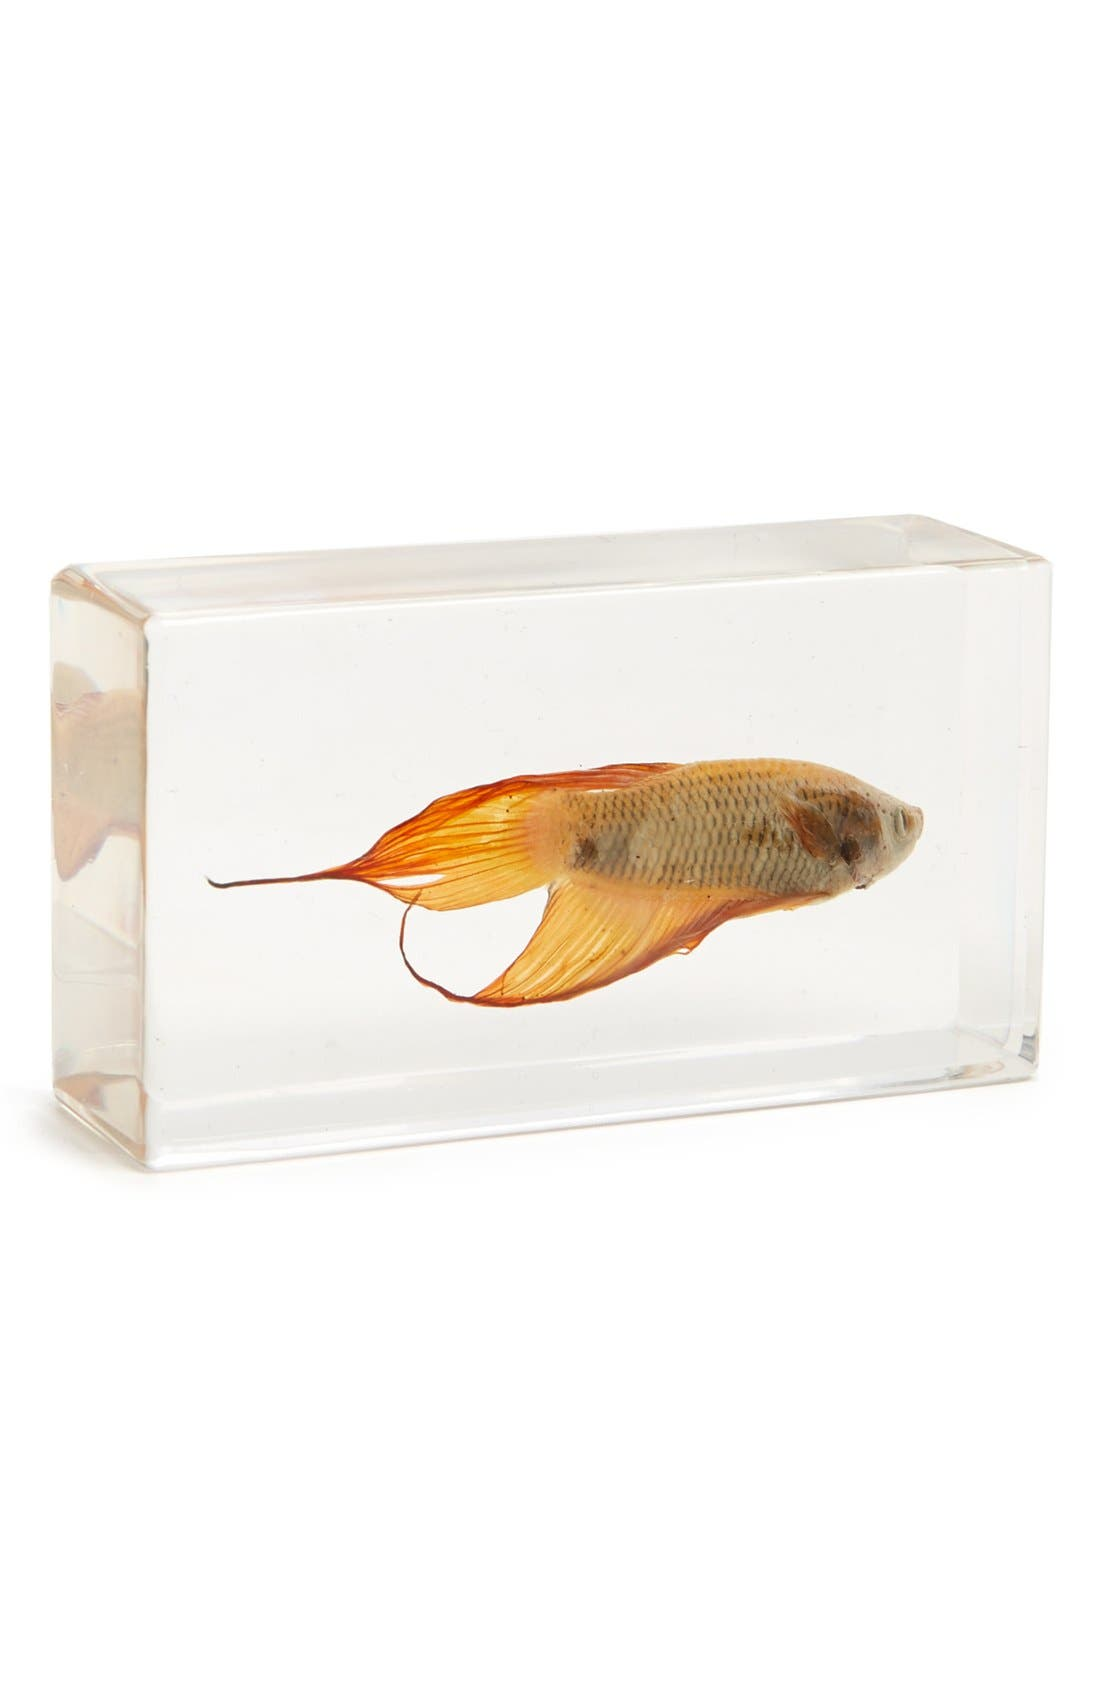 Alternate Image 1 Selected - The Evolution Store Tropical Betta Fish in Resin